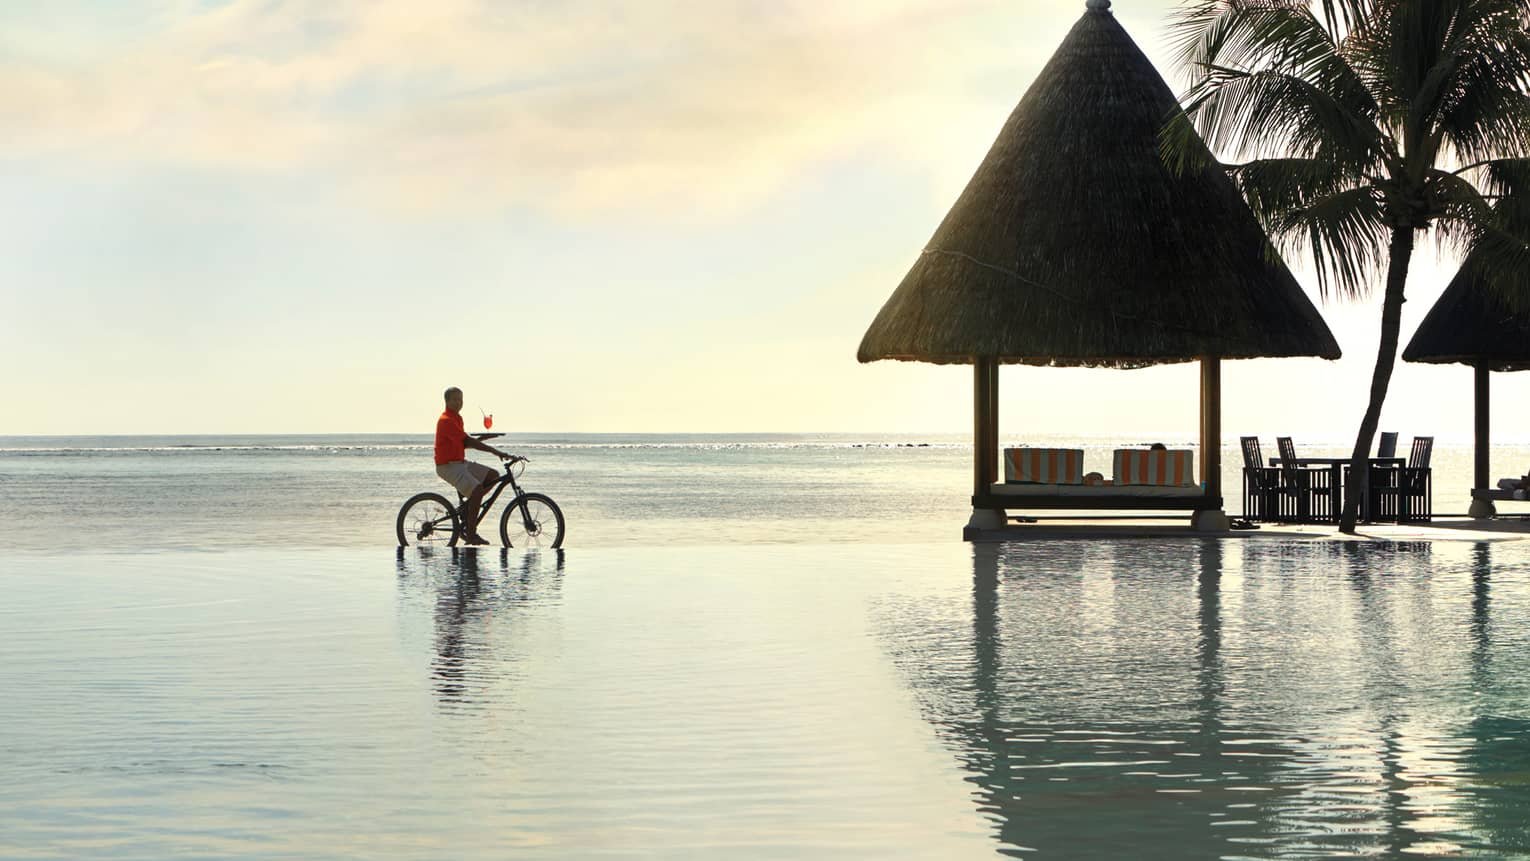 A server riding a bike balances a cocktail on a tray along oceanfront lounge